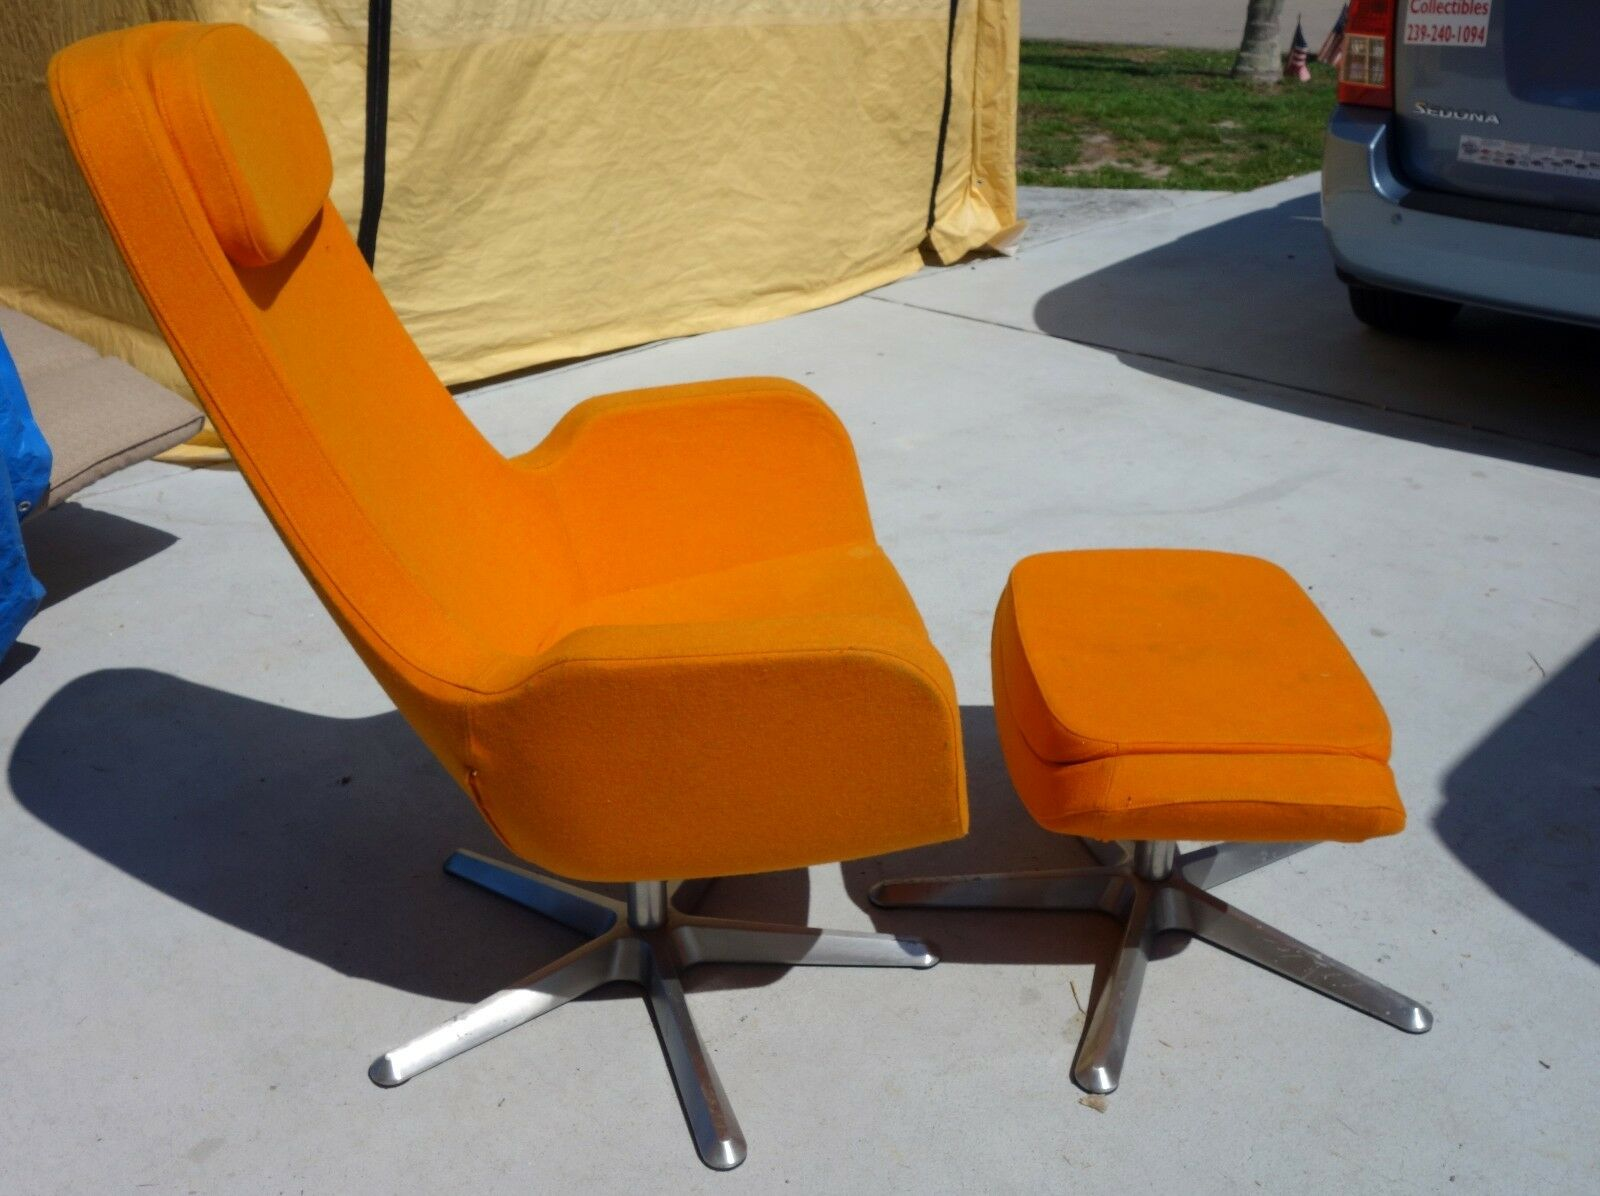 Orange Mid Century Modern Chair Mid Century Modern Lounge Chair And Ottoman Orange Mid